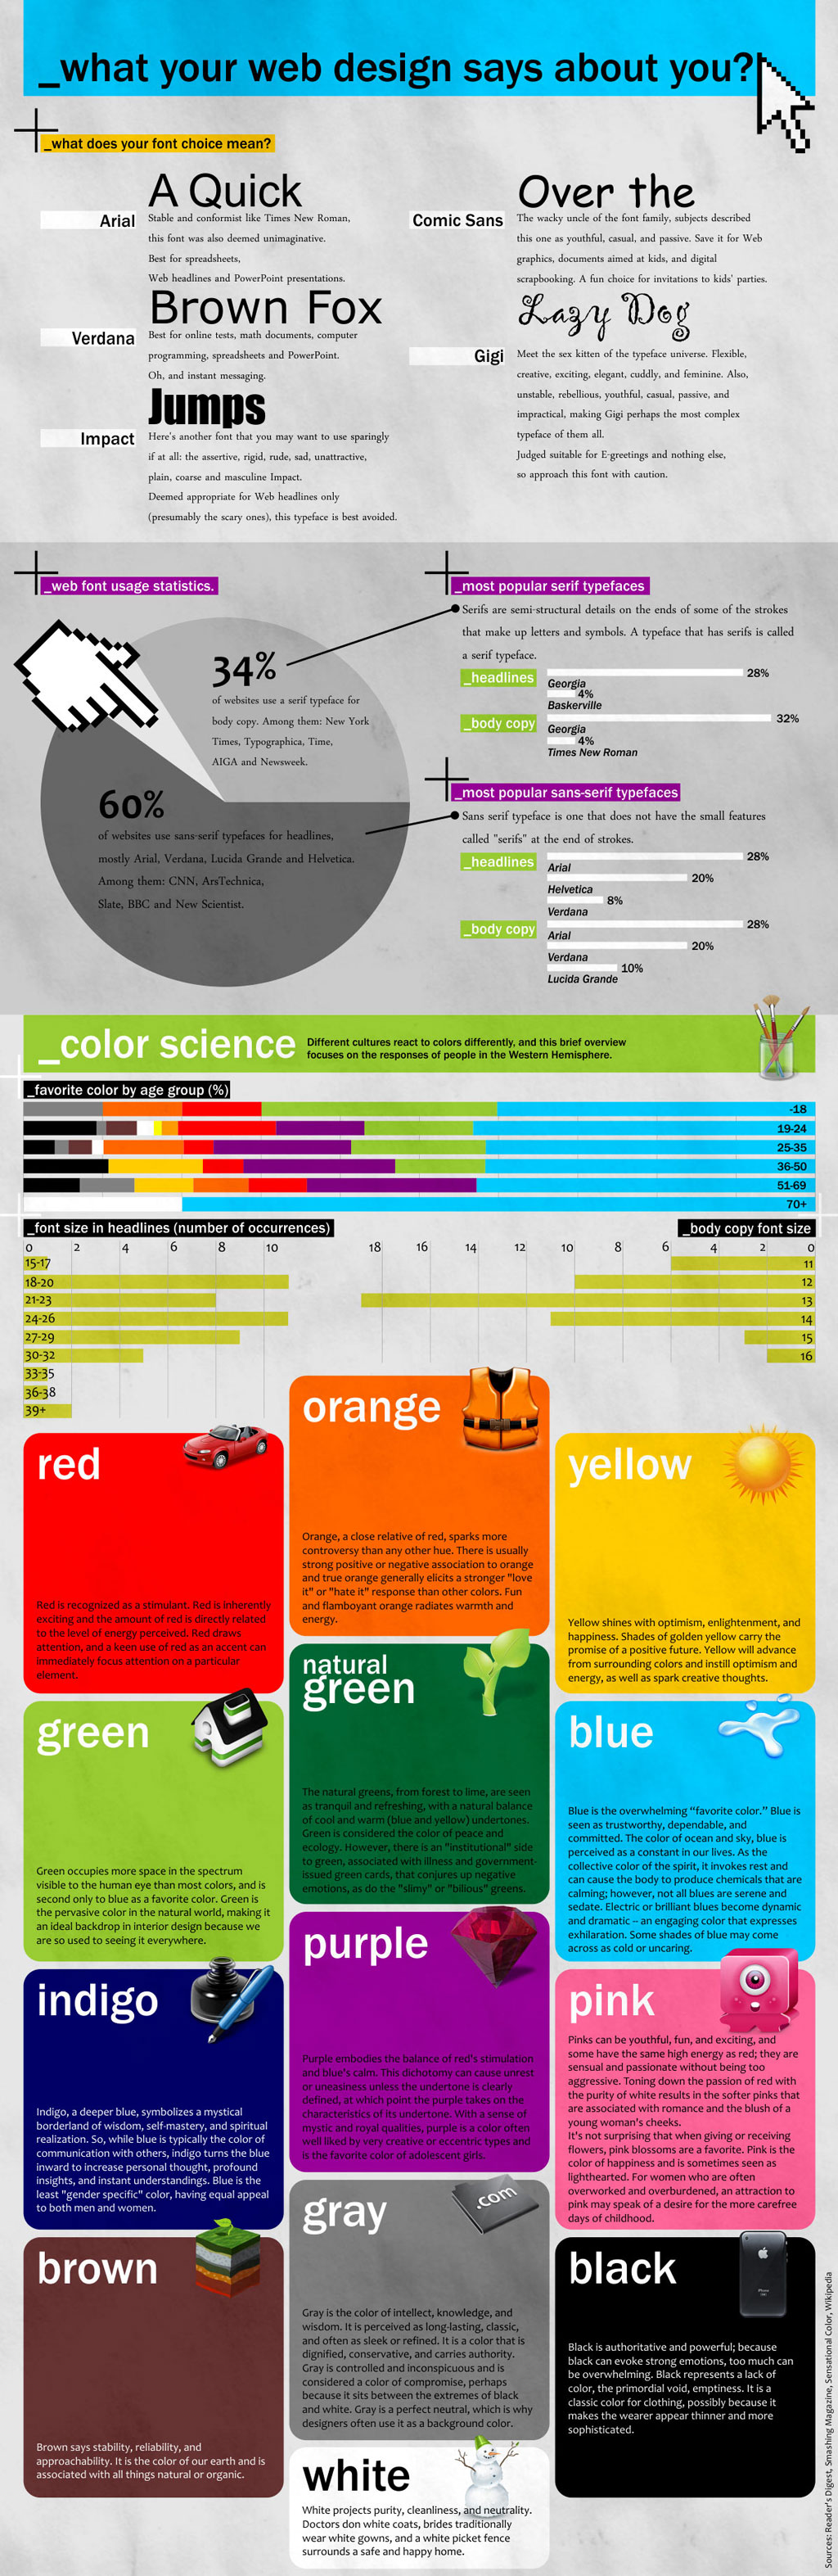 infographie-signification-web-design1